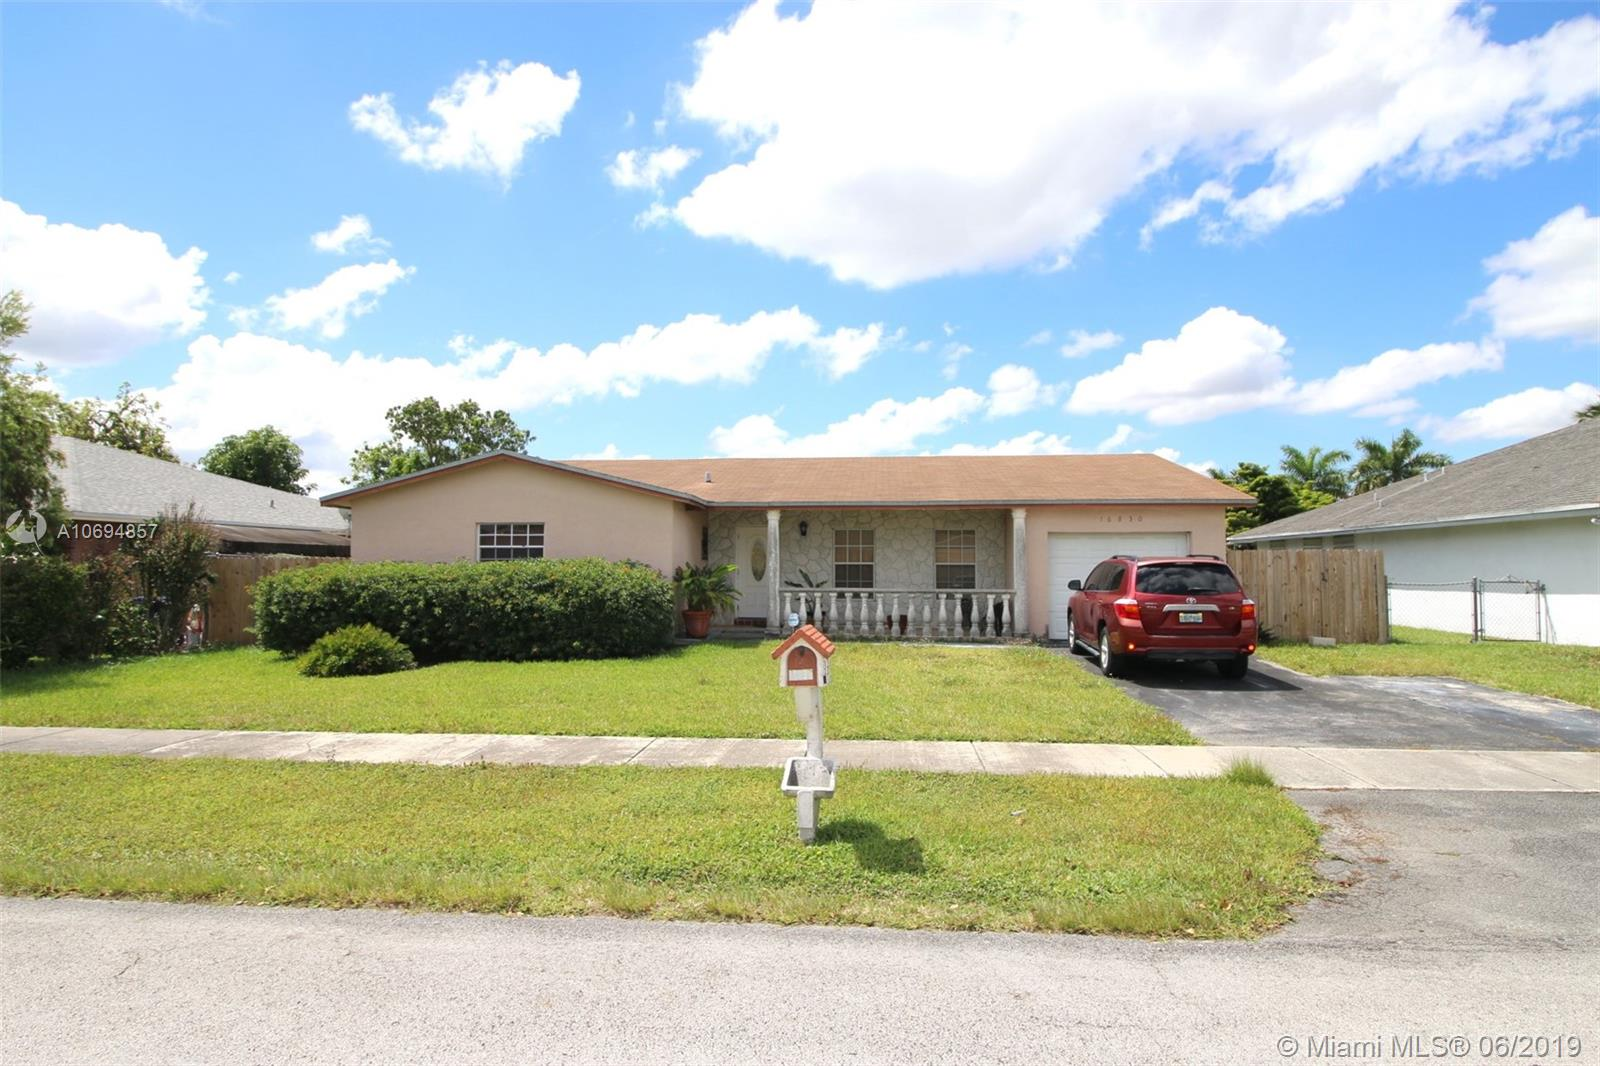 Price Reduced property for sale at 16830 SW 109th Ave, Kendall Florida 33157